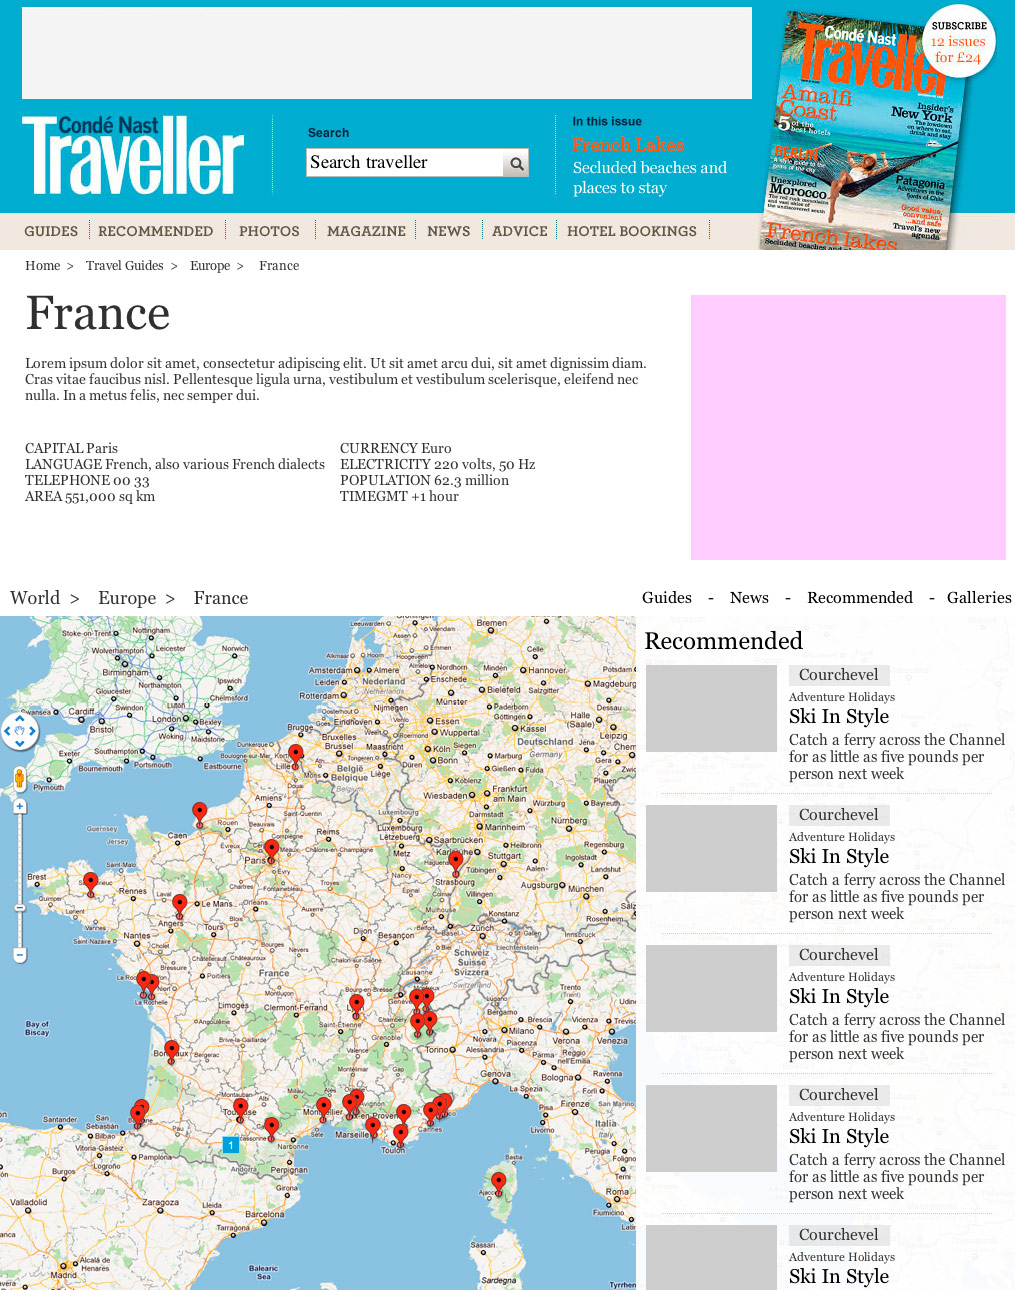 Wireframe of the Country Guide page